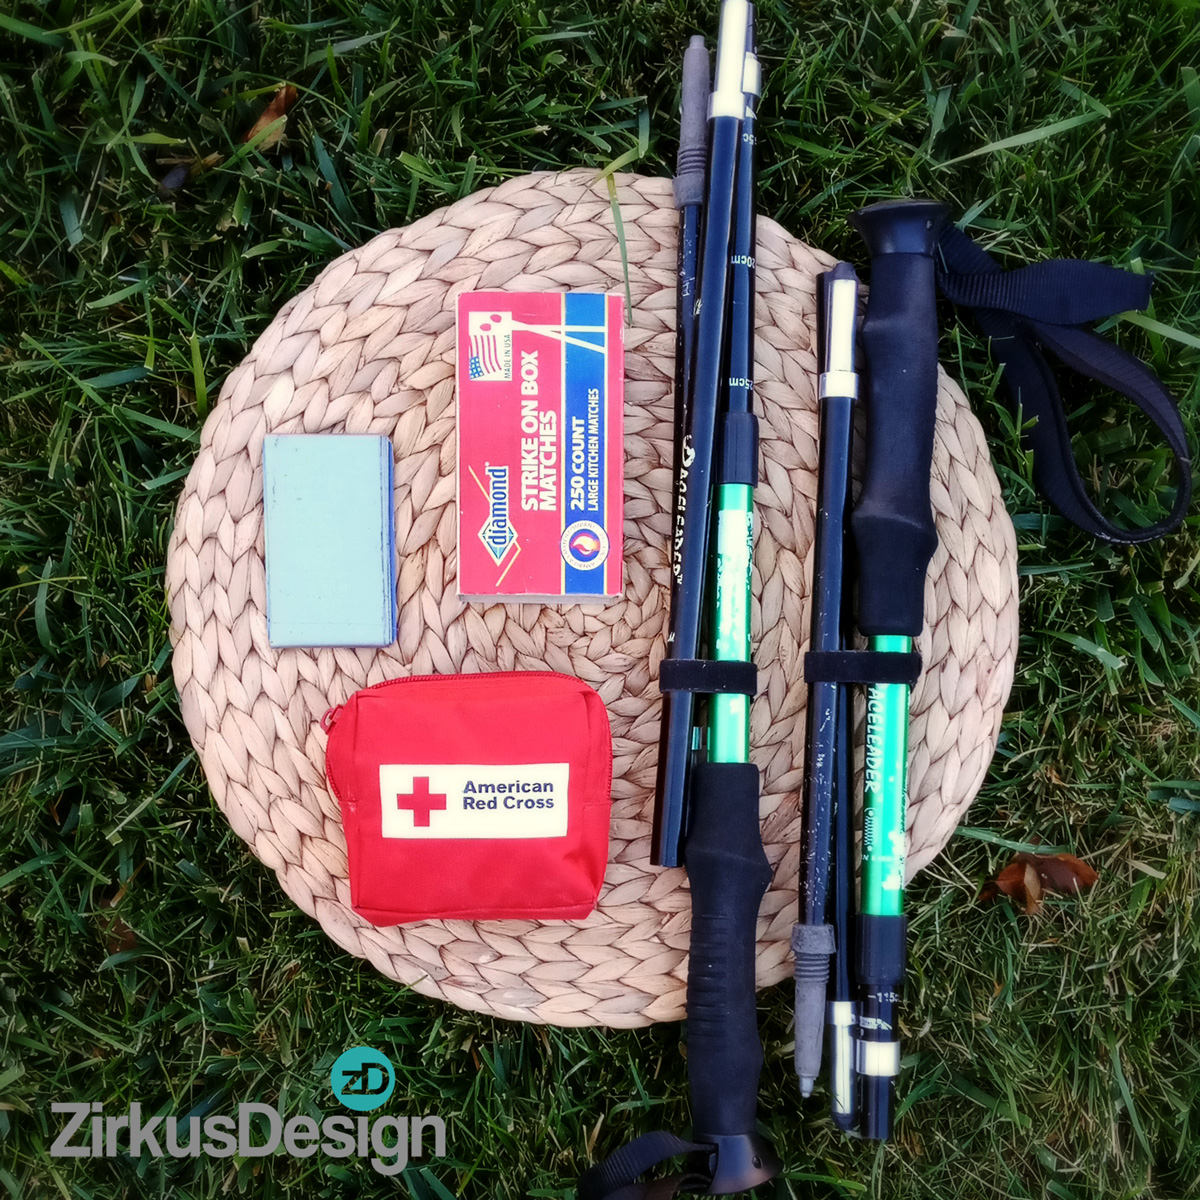 What to Pack for a Family Day Hike - FREE Printable Checklist! - ZirkusDesign.com - Essential Gear for Hiking with Kids